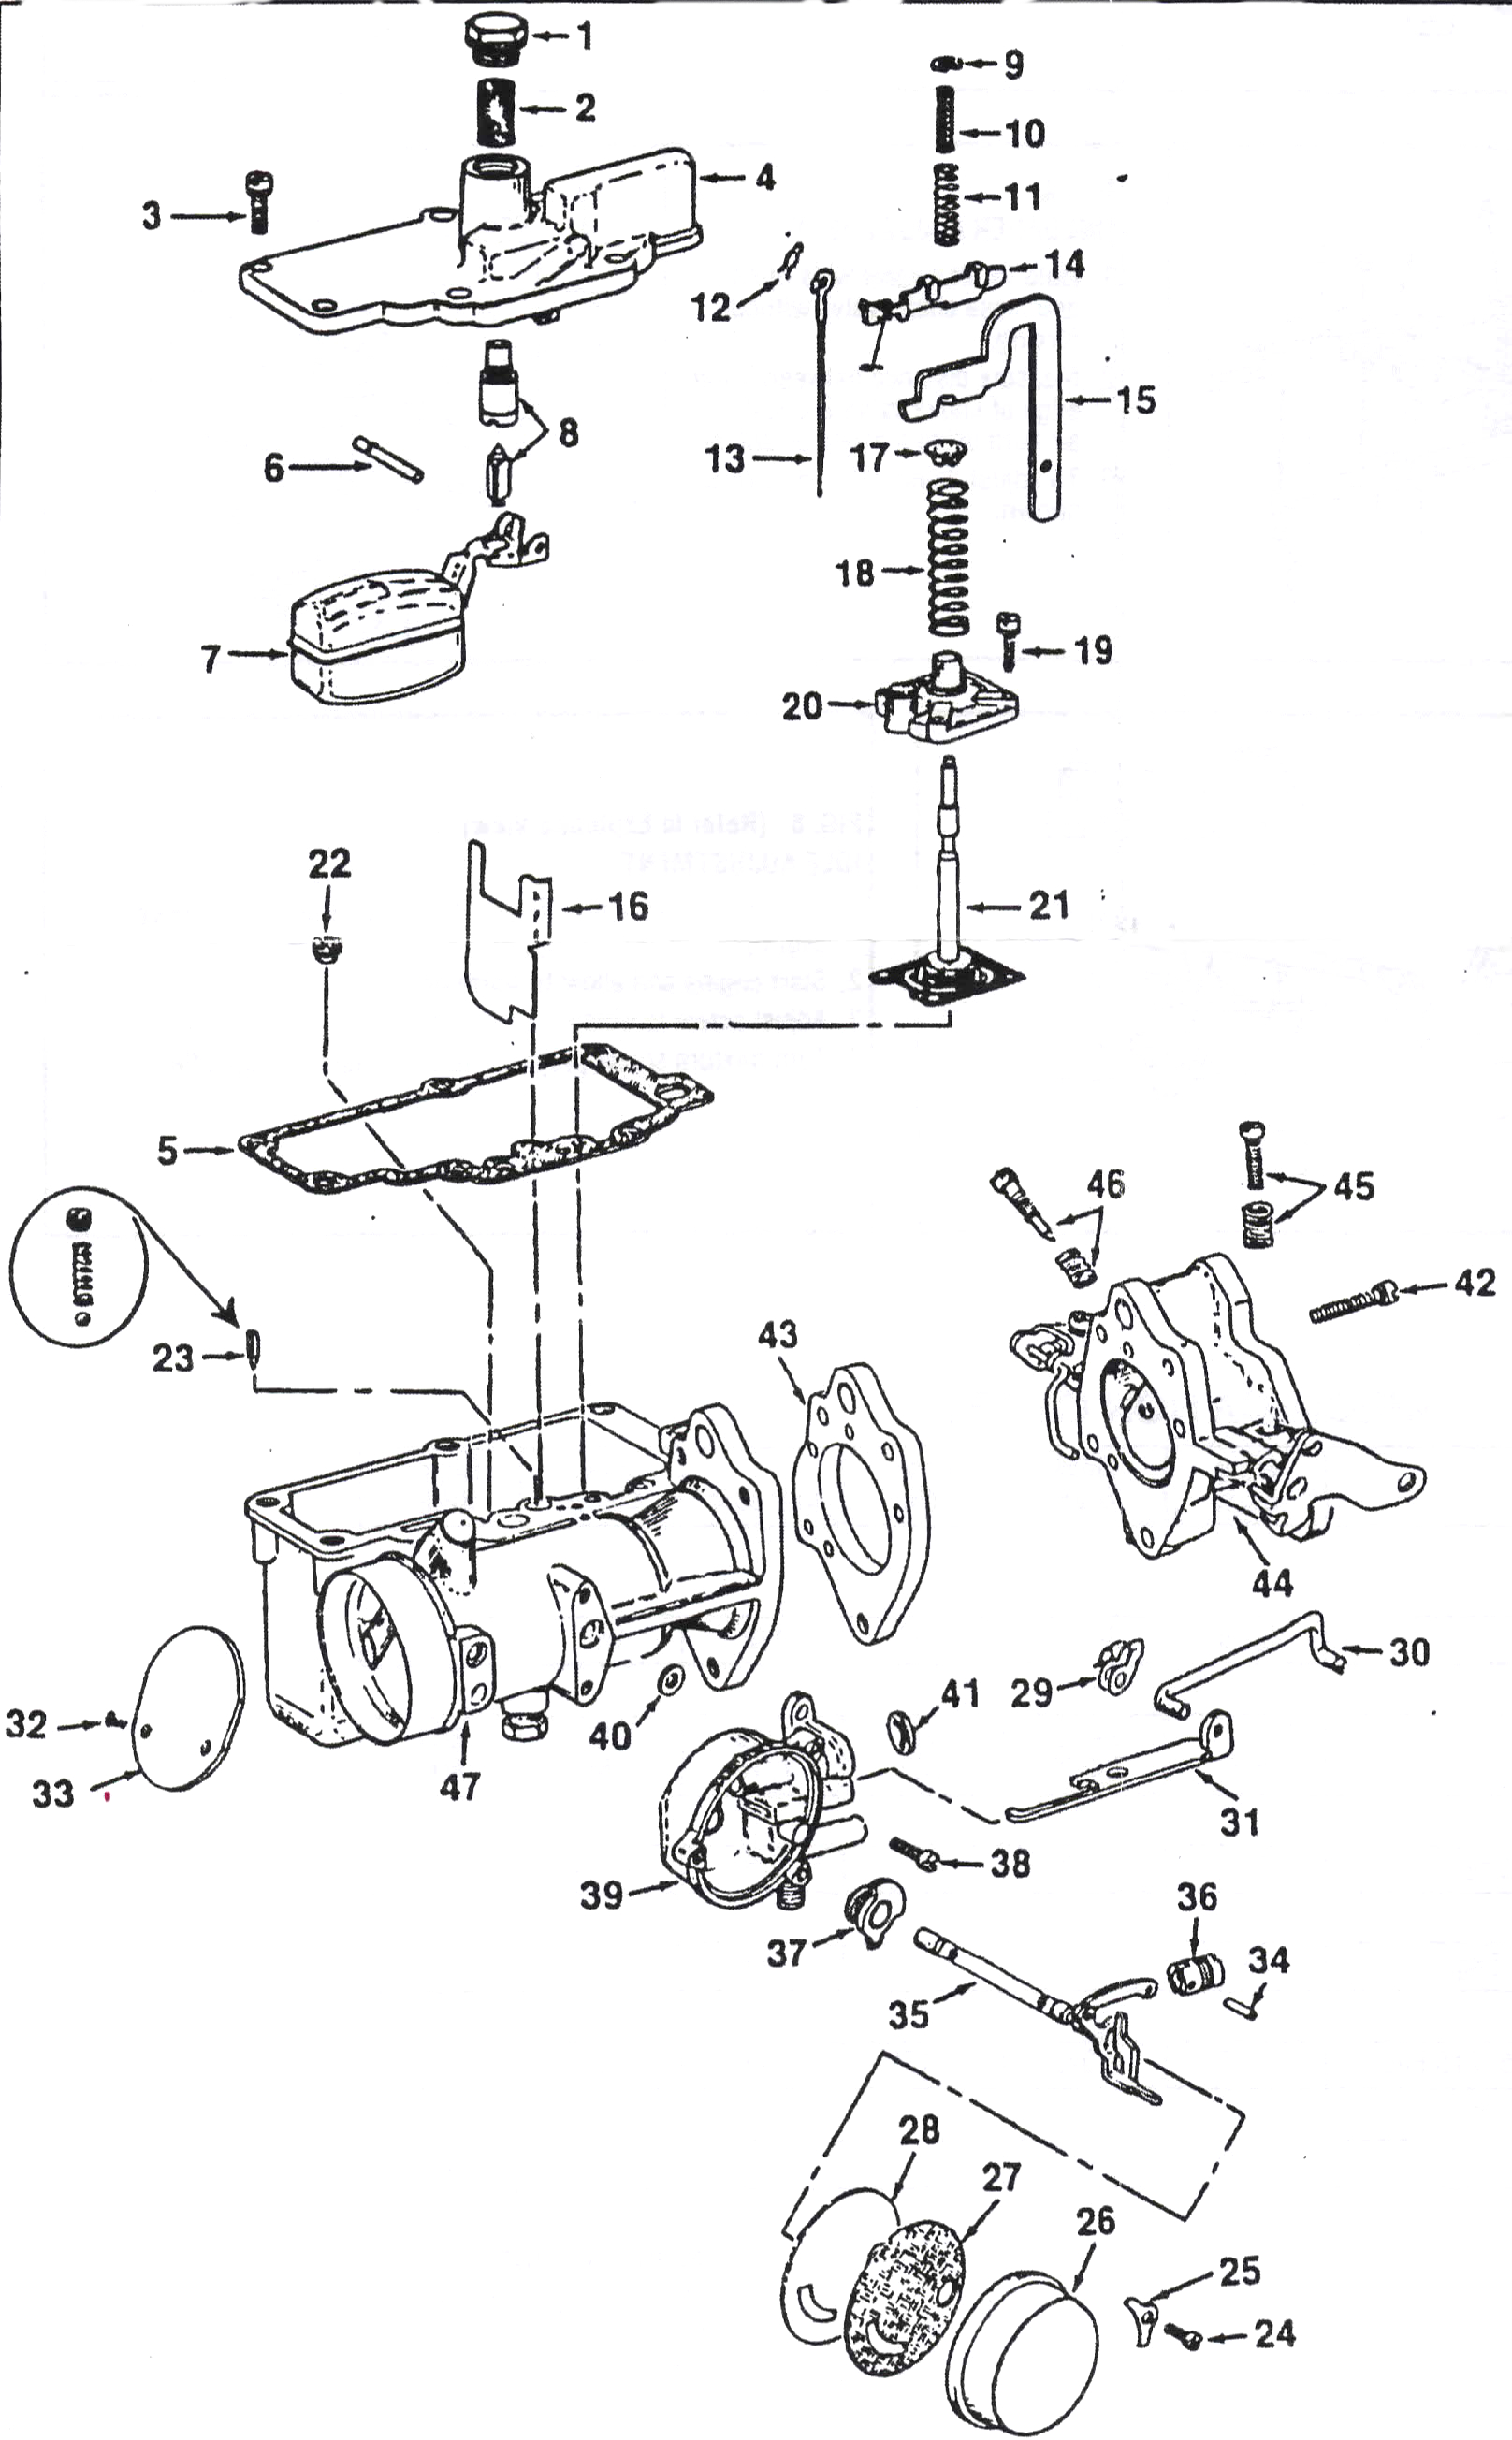 Carter YH Exploded View